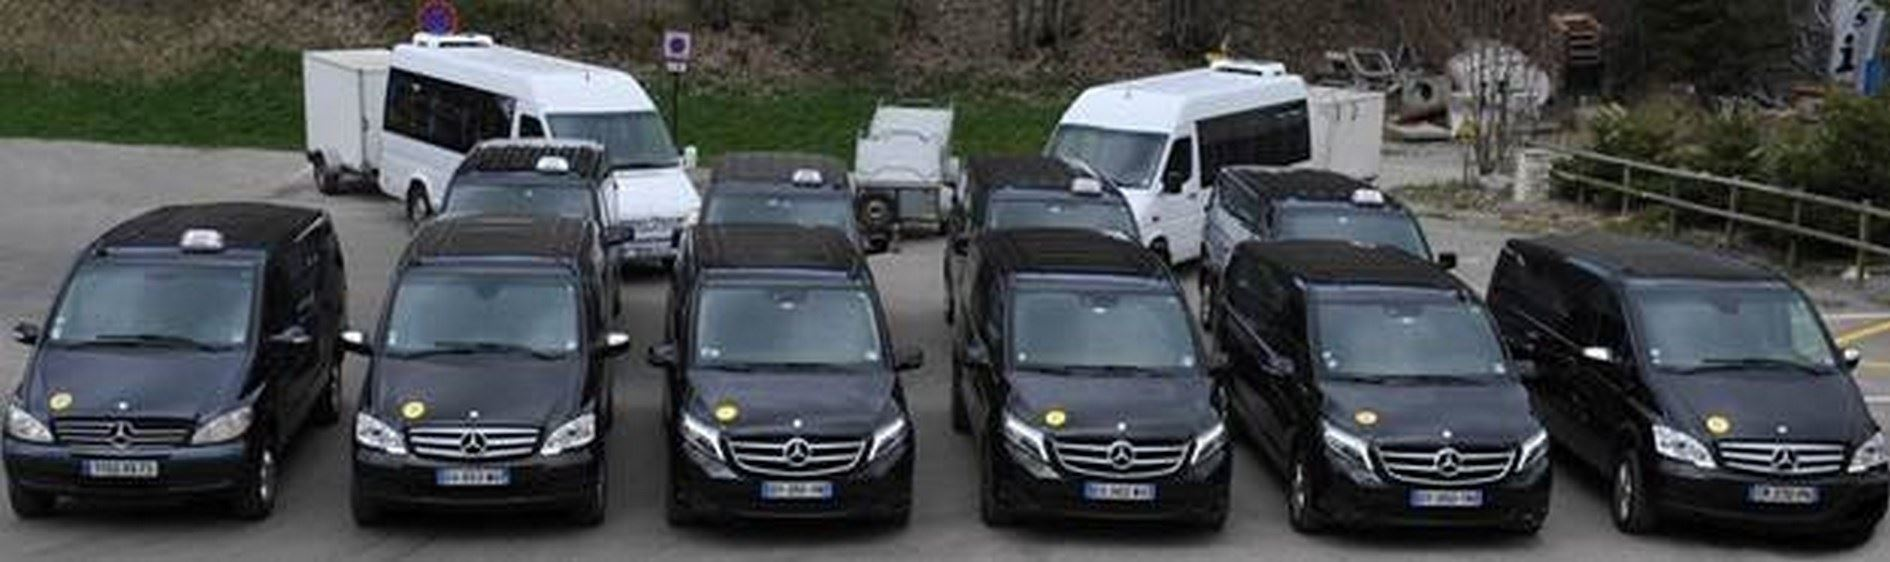 PRIVATE TRANSFER FROM AIX-LES-BAINS TRAIN STATION - ALPES TAXIS TRANSPORTS